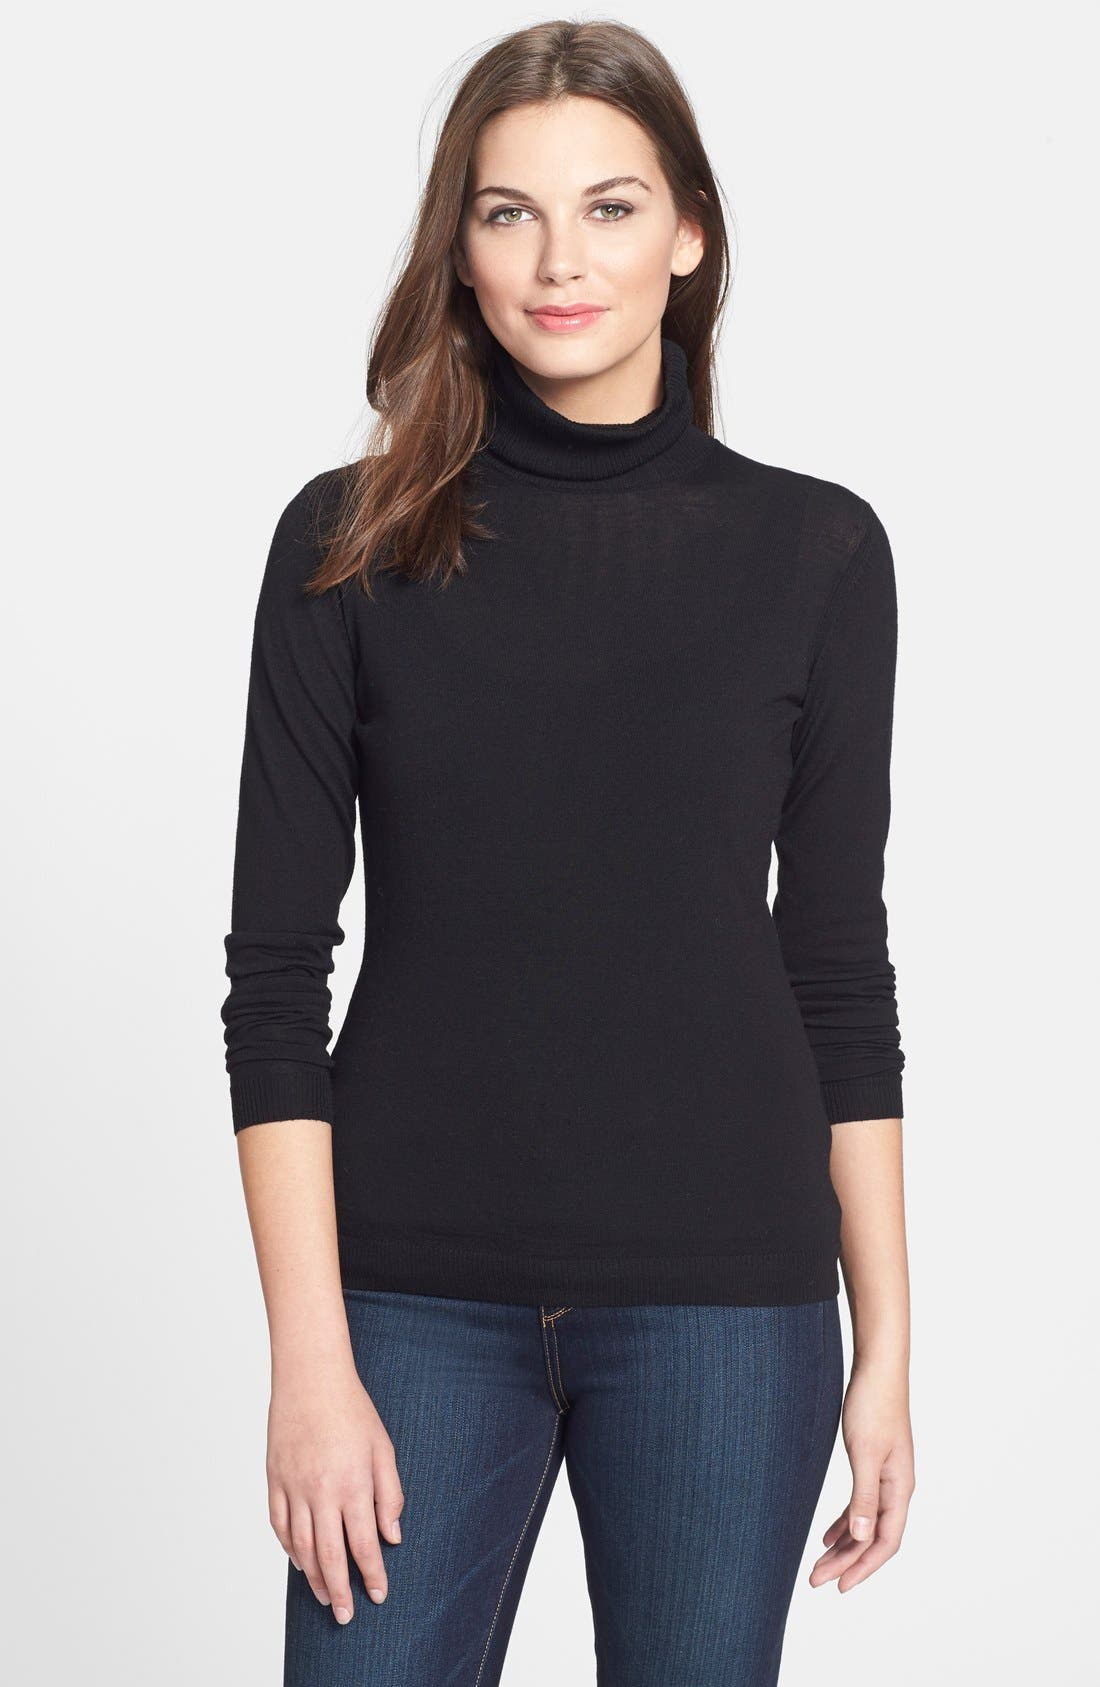 Alternate Image 1 Selected - Lafayette 148 New York Fine Gauge Turtleneck